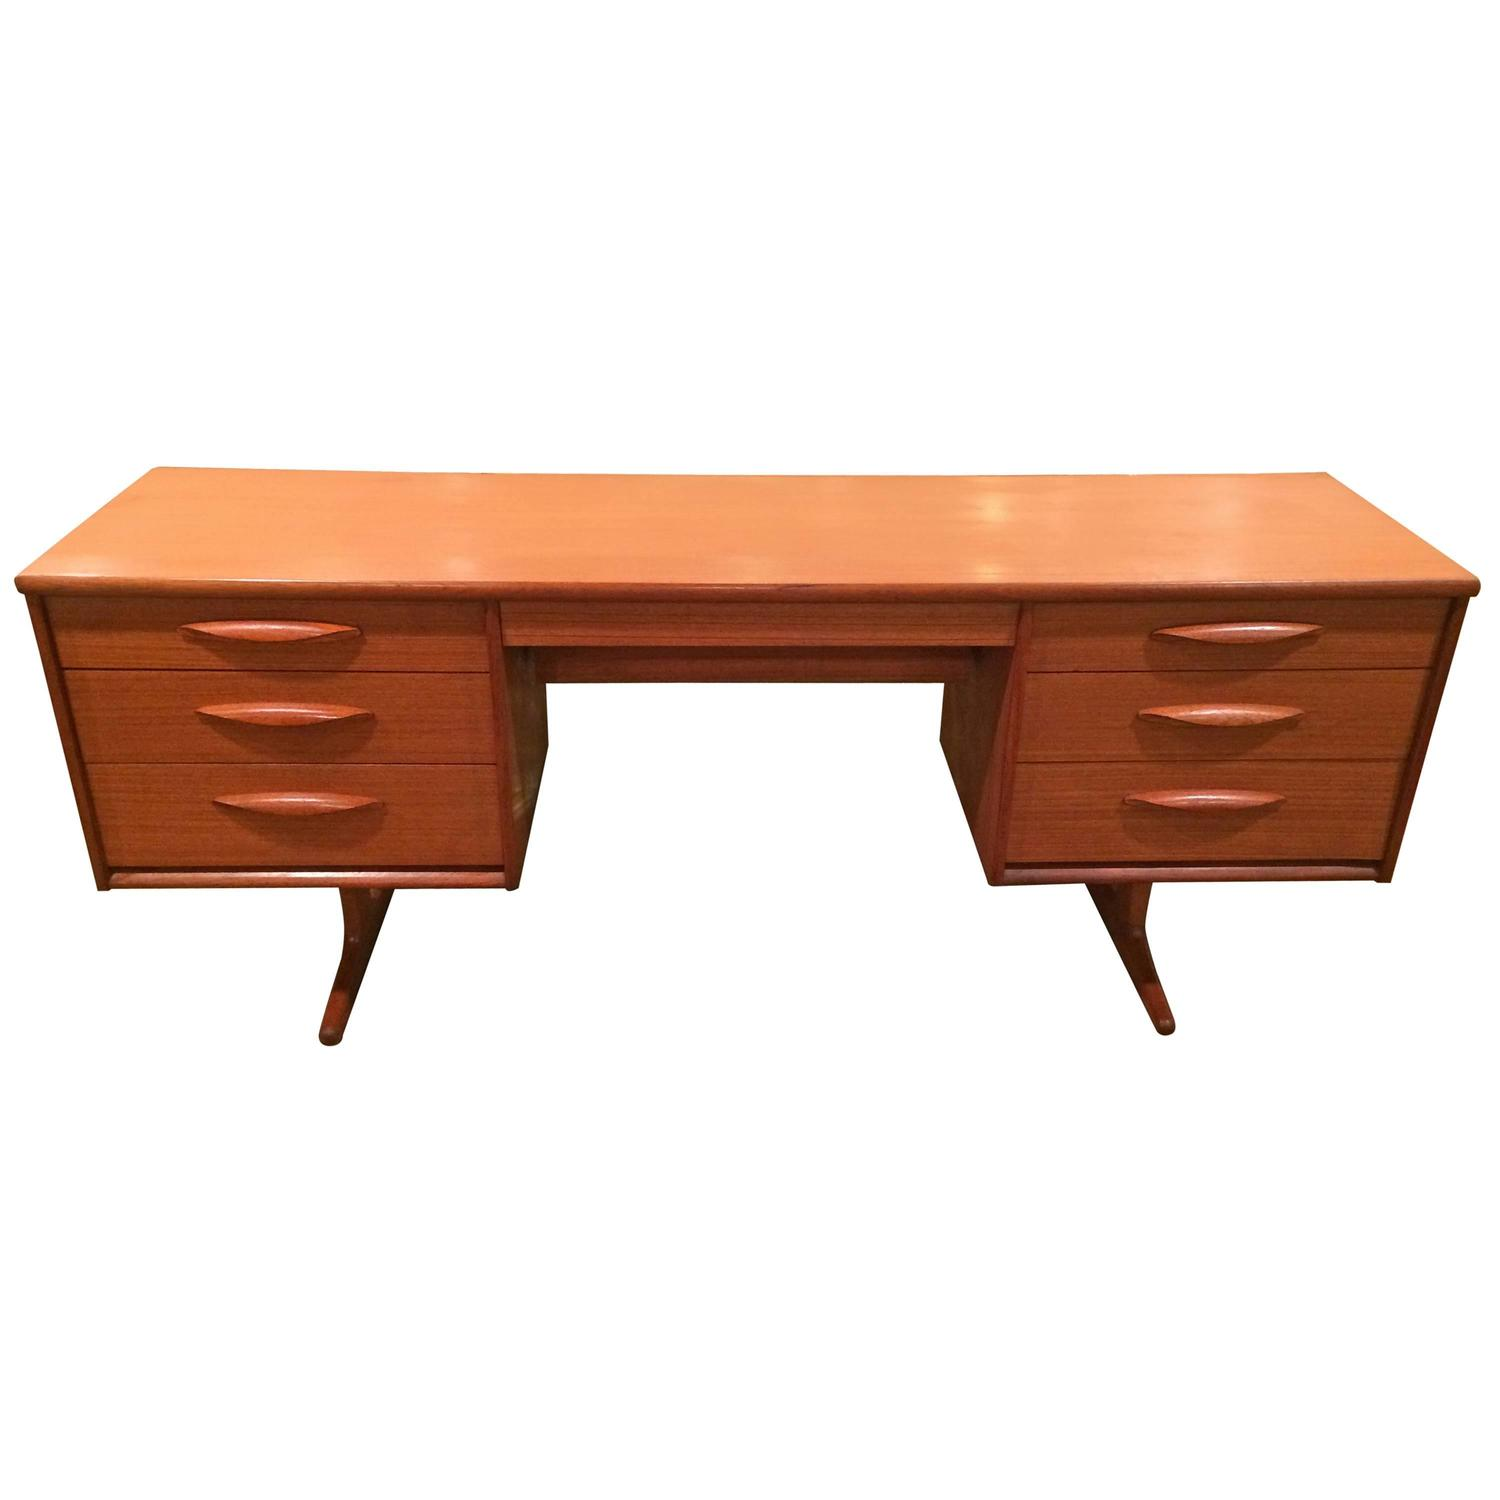 Floating teak desk or vanity for sale at 1stdibs for Floating desk for sale